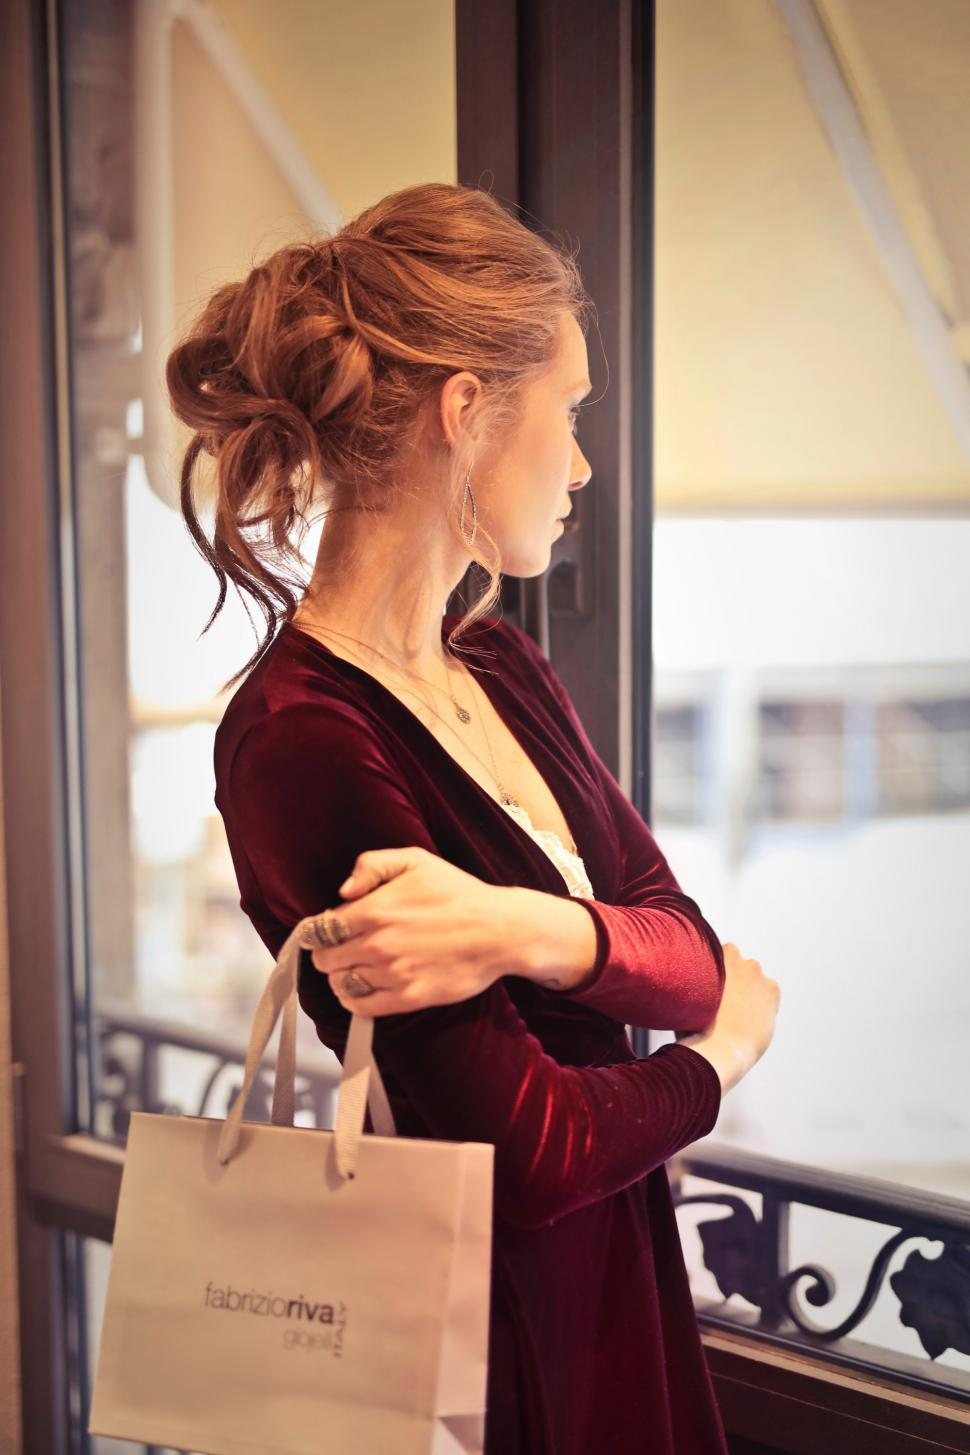 Download Free Stock Photo of A young blond woman with elegant hair bun holding a shopping bag